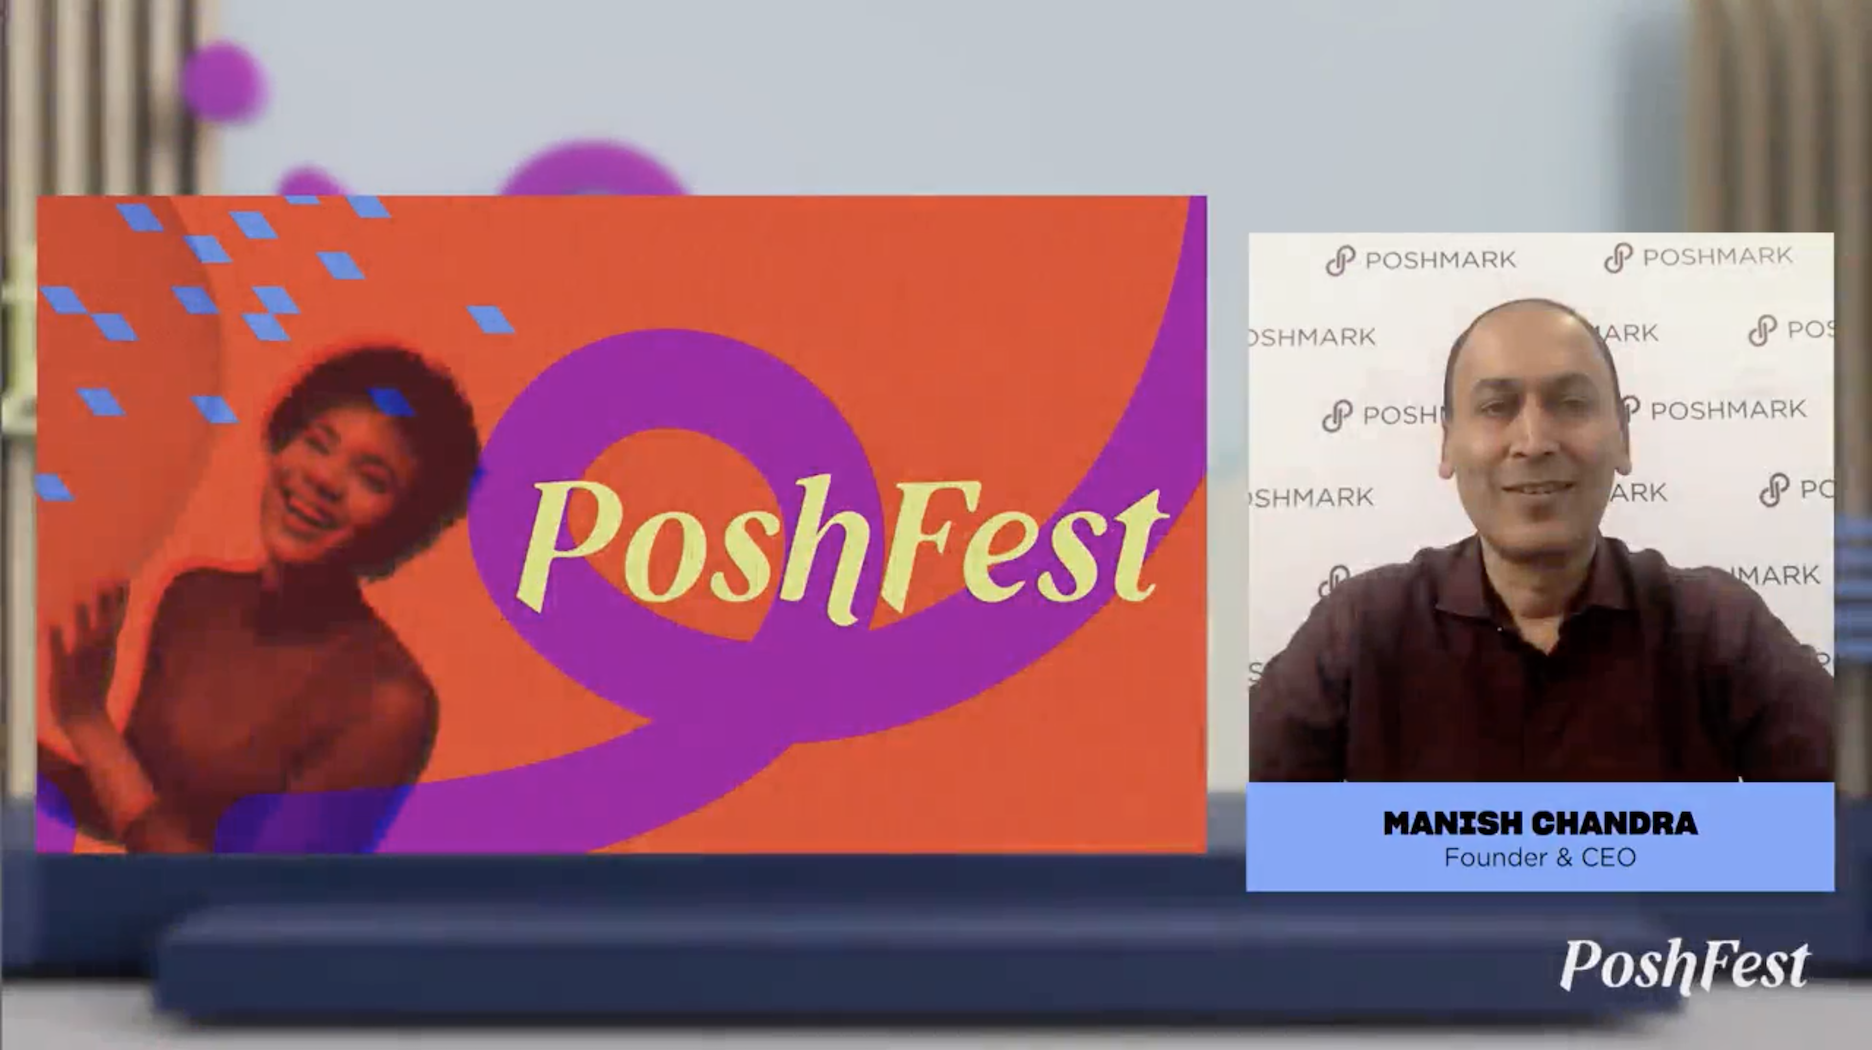 """Manish Chandra, co-founder and CEO of Poshmark, unveiled the My Shoppers and Closet Insights features at the """"Poshfest"""" digital event."""